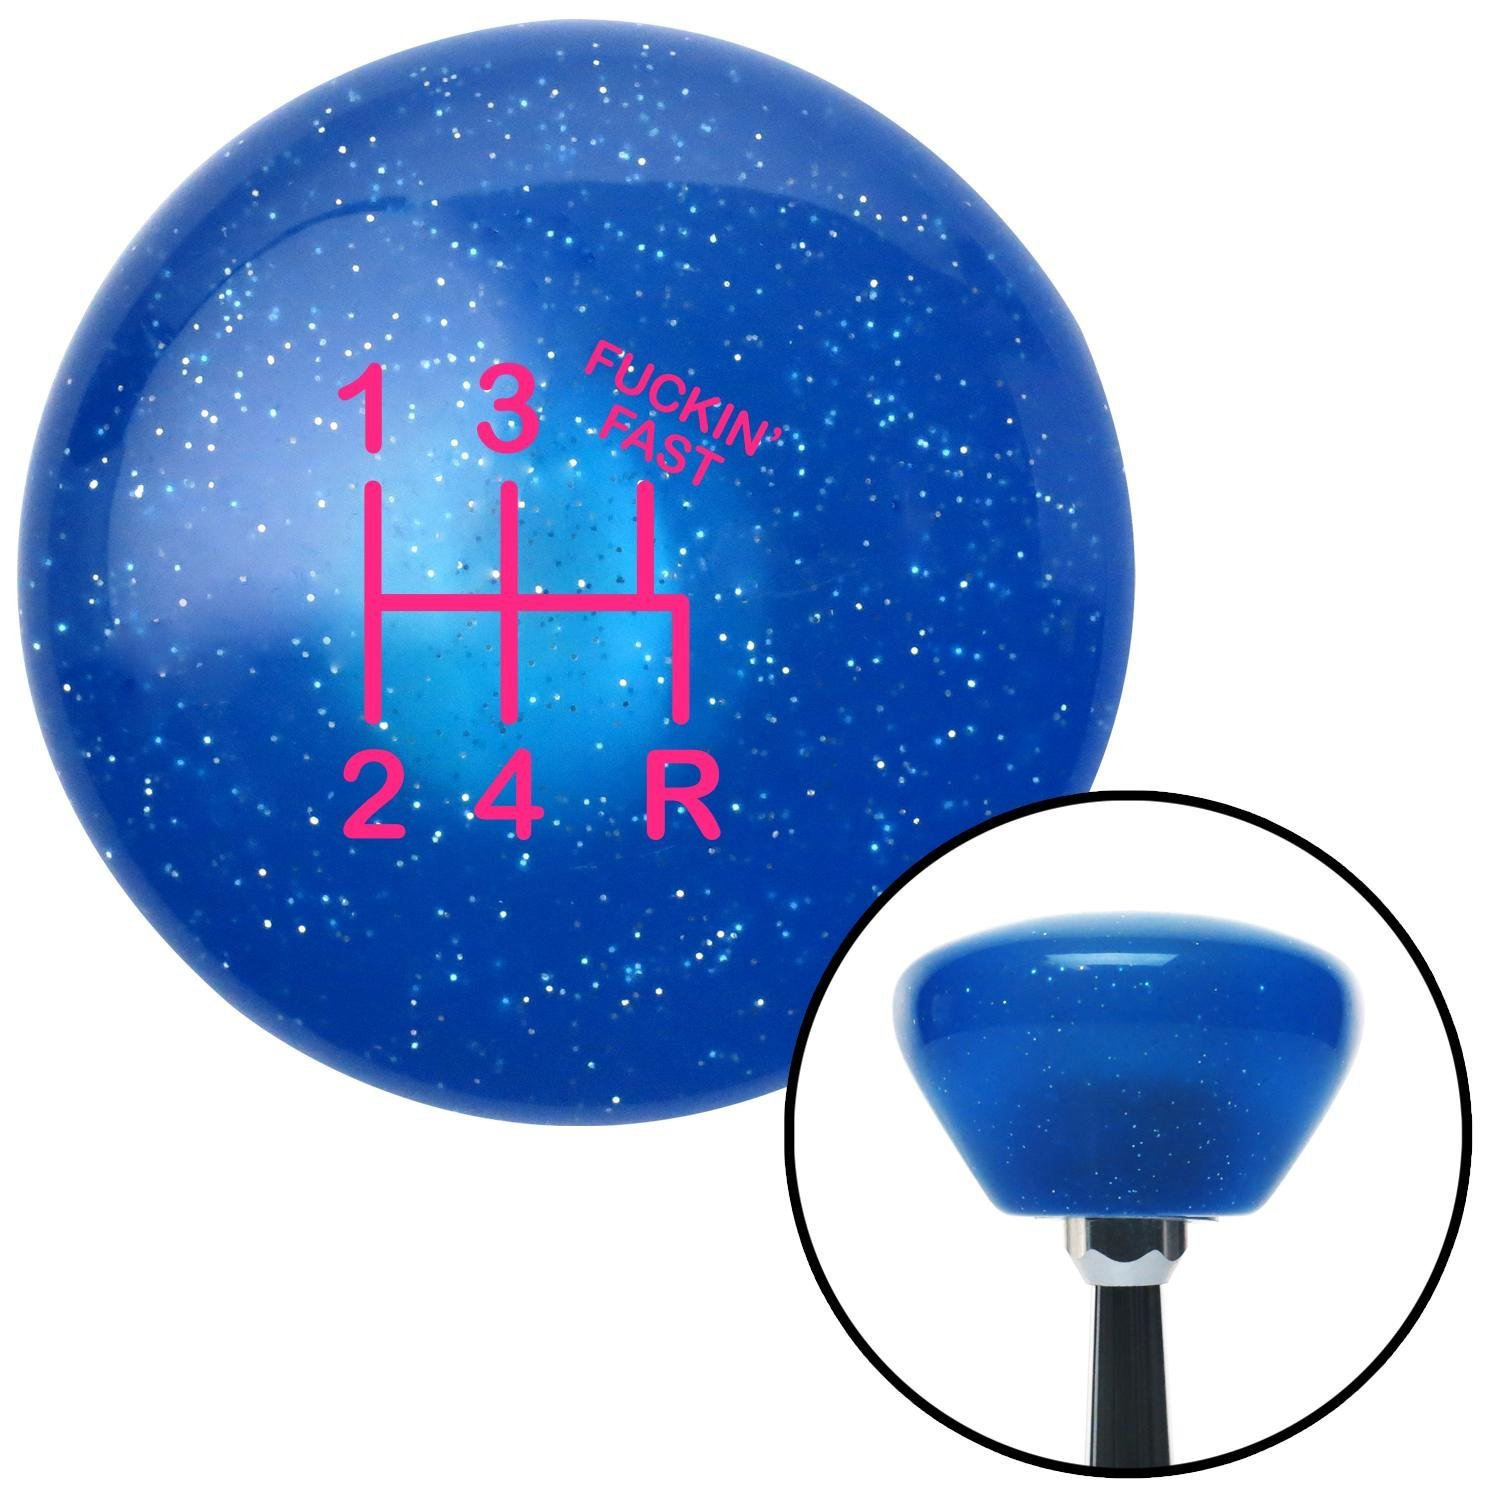 American Shifter 192245 Blue Retro Metal Flake Shift Knob with M16 x 1.5 Insert Pink Shift Pattern Fcking Fast Style 15n